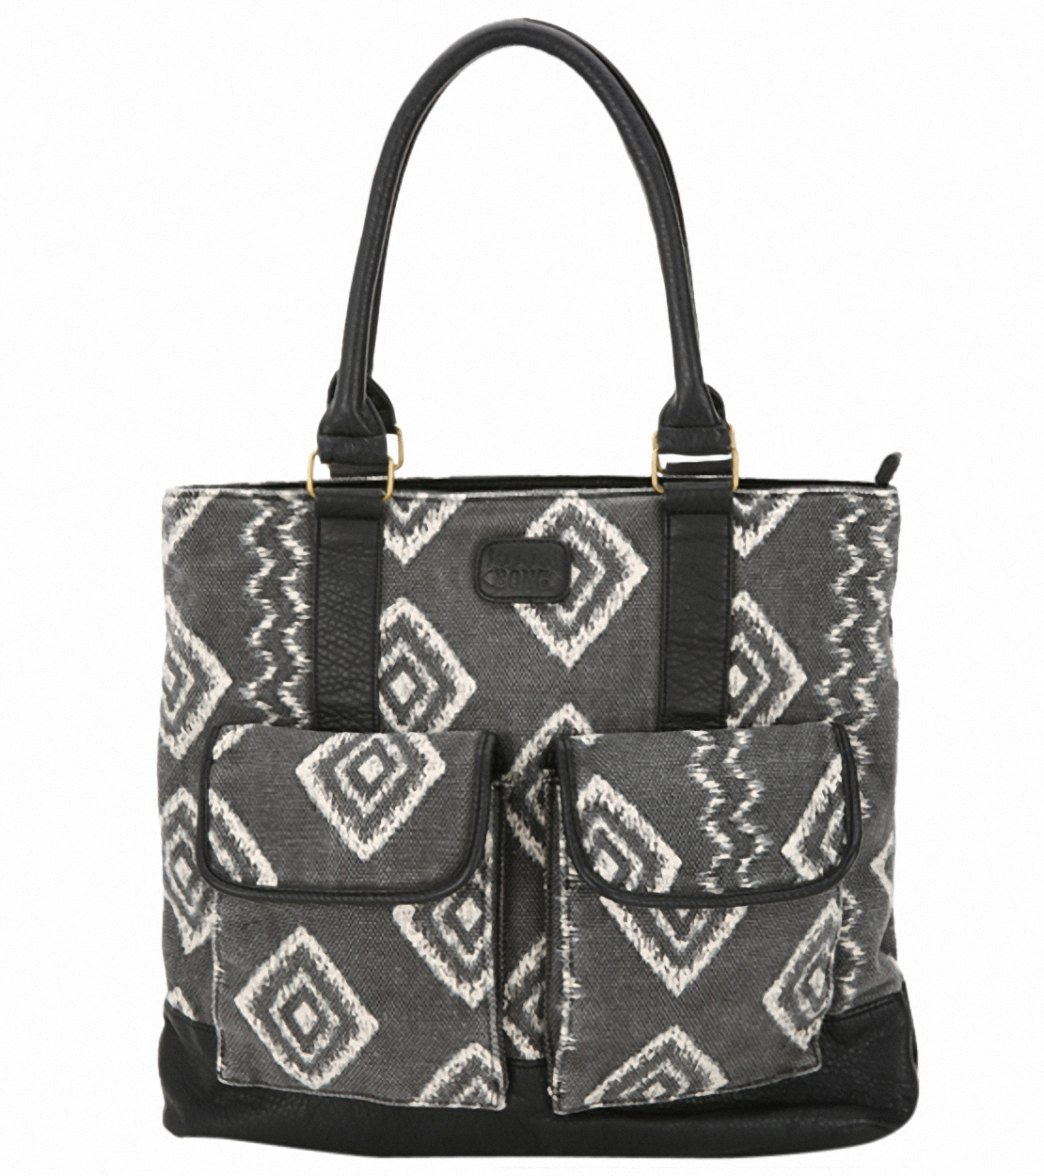 Billabong Seas Fad Tote Bag